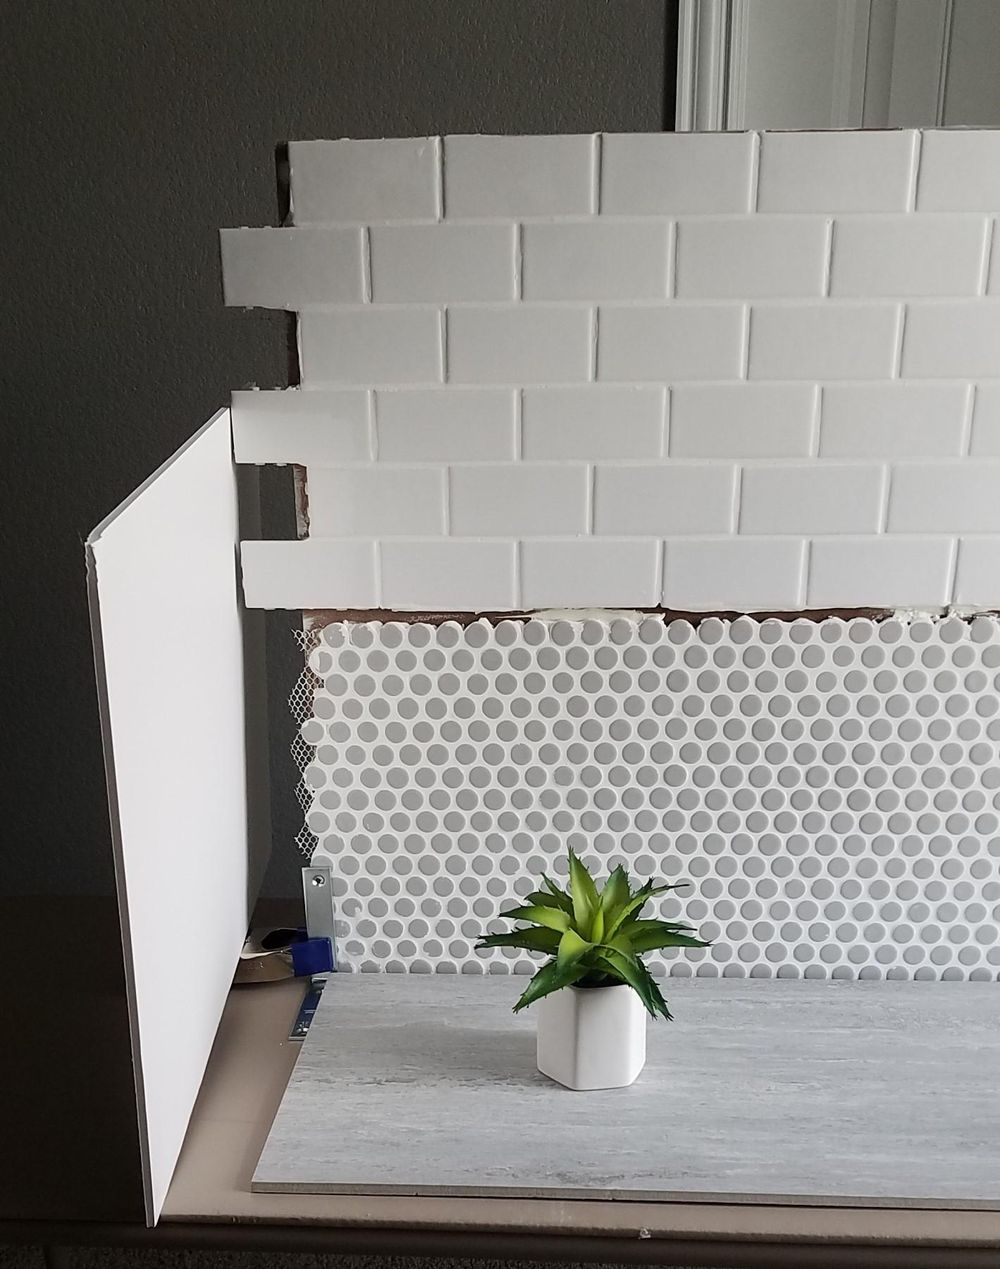 DIY Penny Tile Backdrop - image 2 - student project